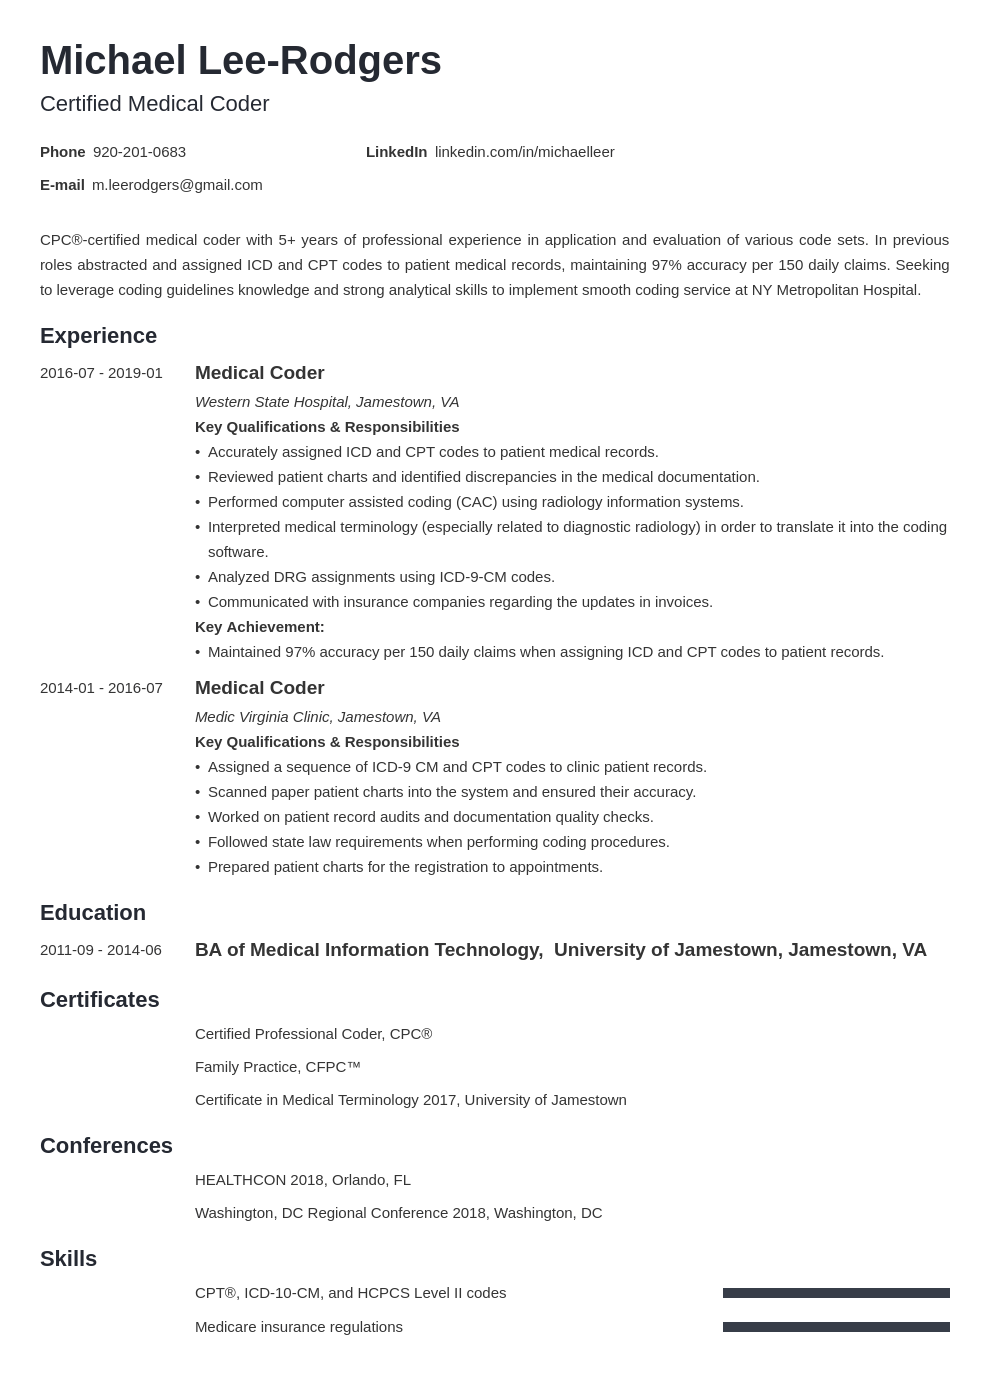 Medical Coder Resume Example Template Minimo Medical Coder Resume Medical Coder Resume Examples